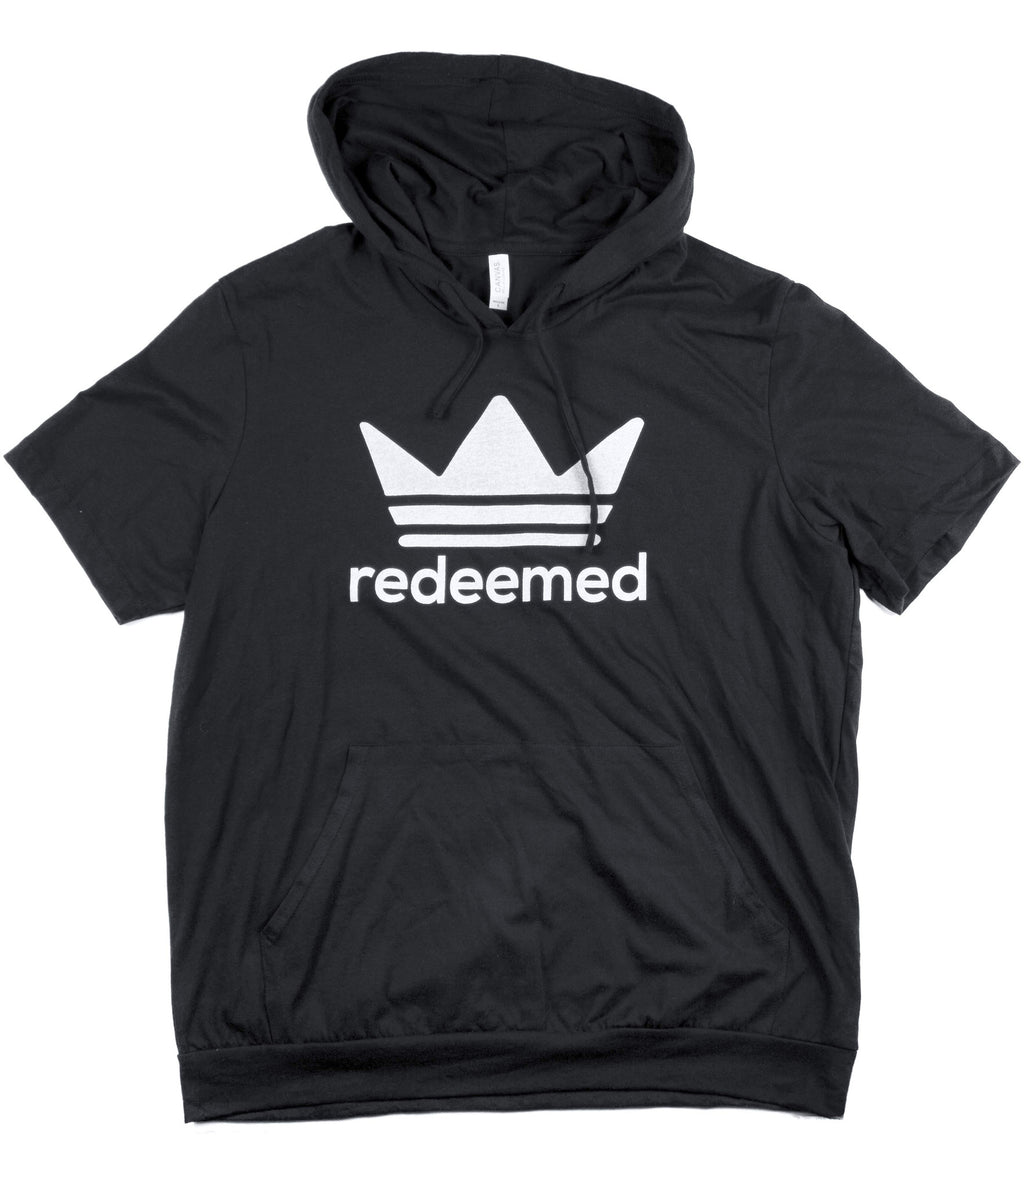 REDEEMED BLACK JERSEY SHORT SLEEVE HOODIE